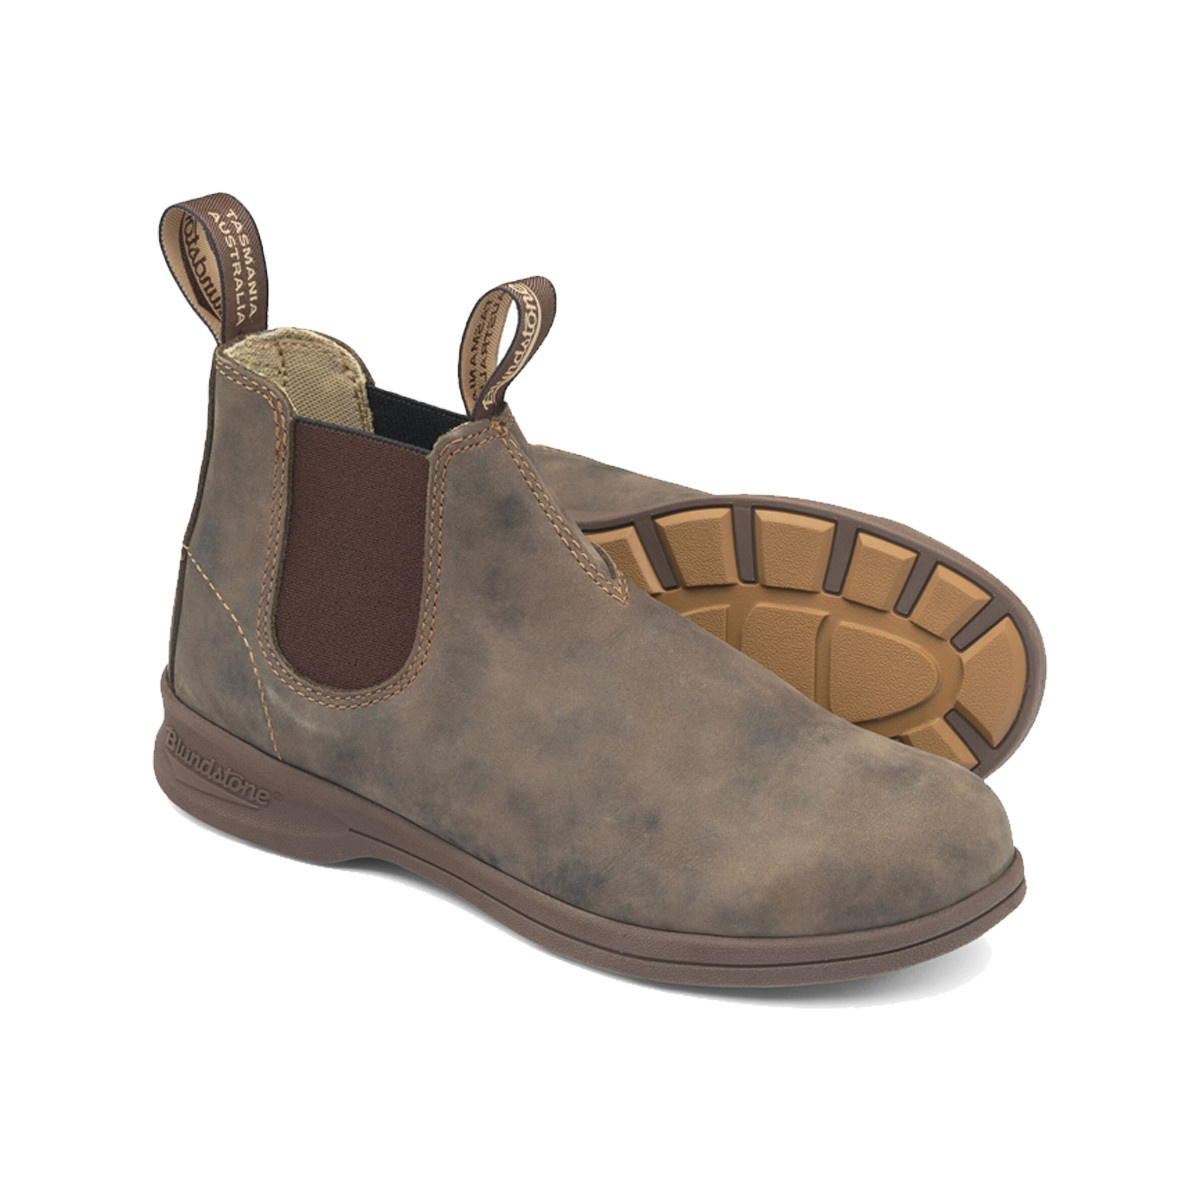 Blundstone Blundstone Unisex Active 1496 Leather Rustic Brown